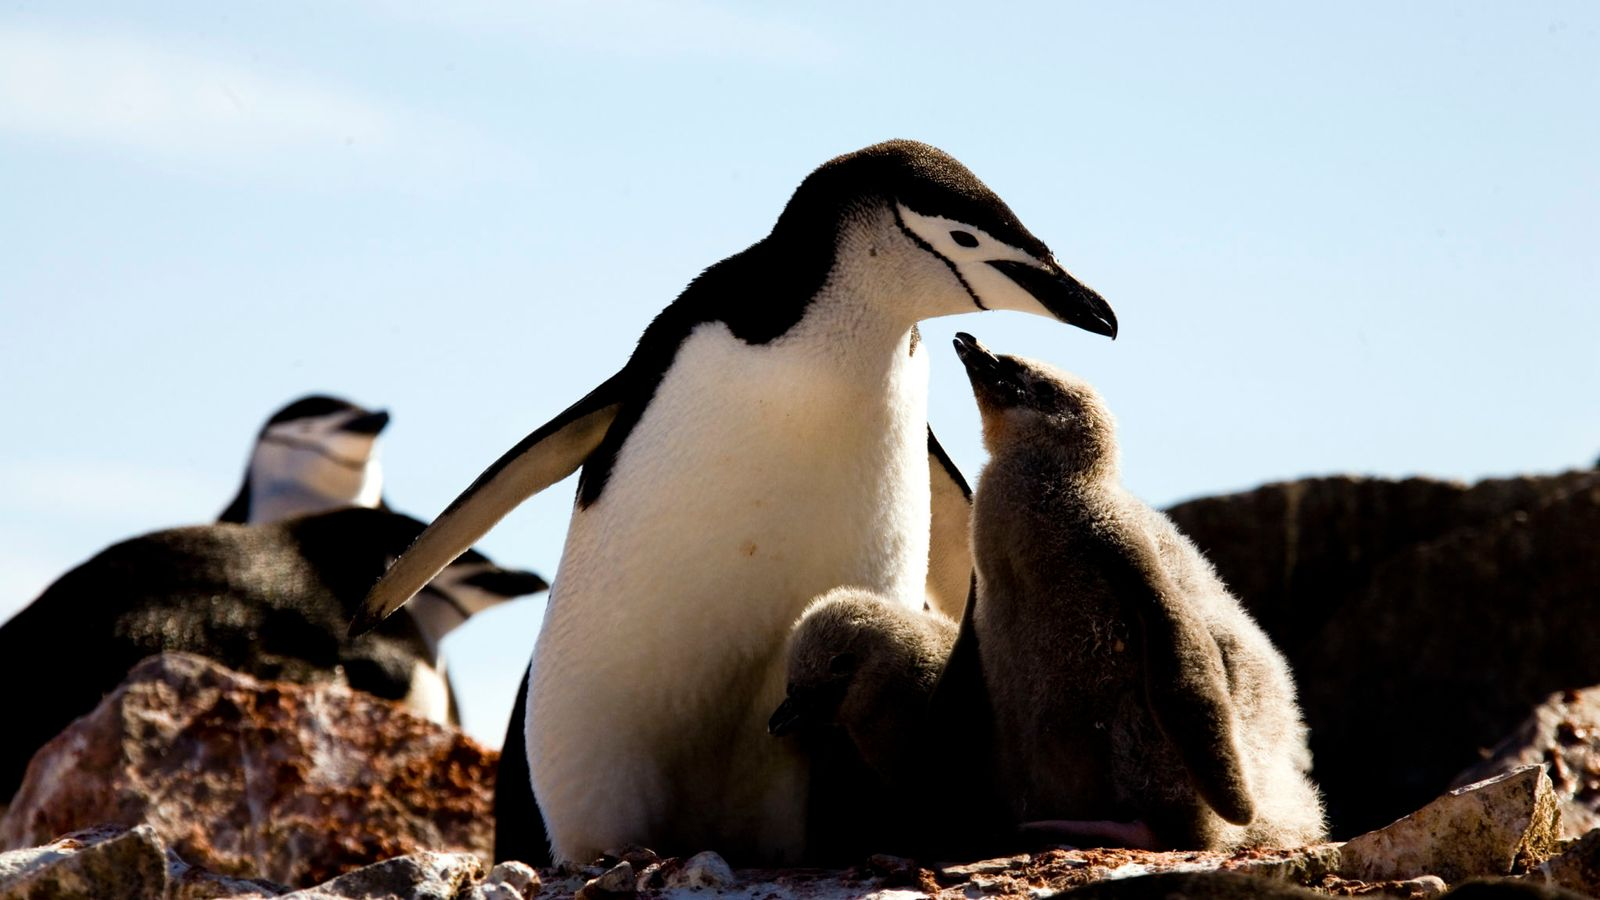 Penguin colony numbers collapse, with climate change thought to be to blame